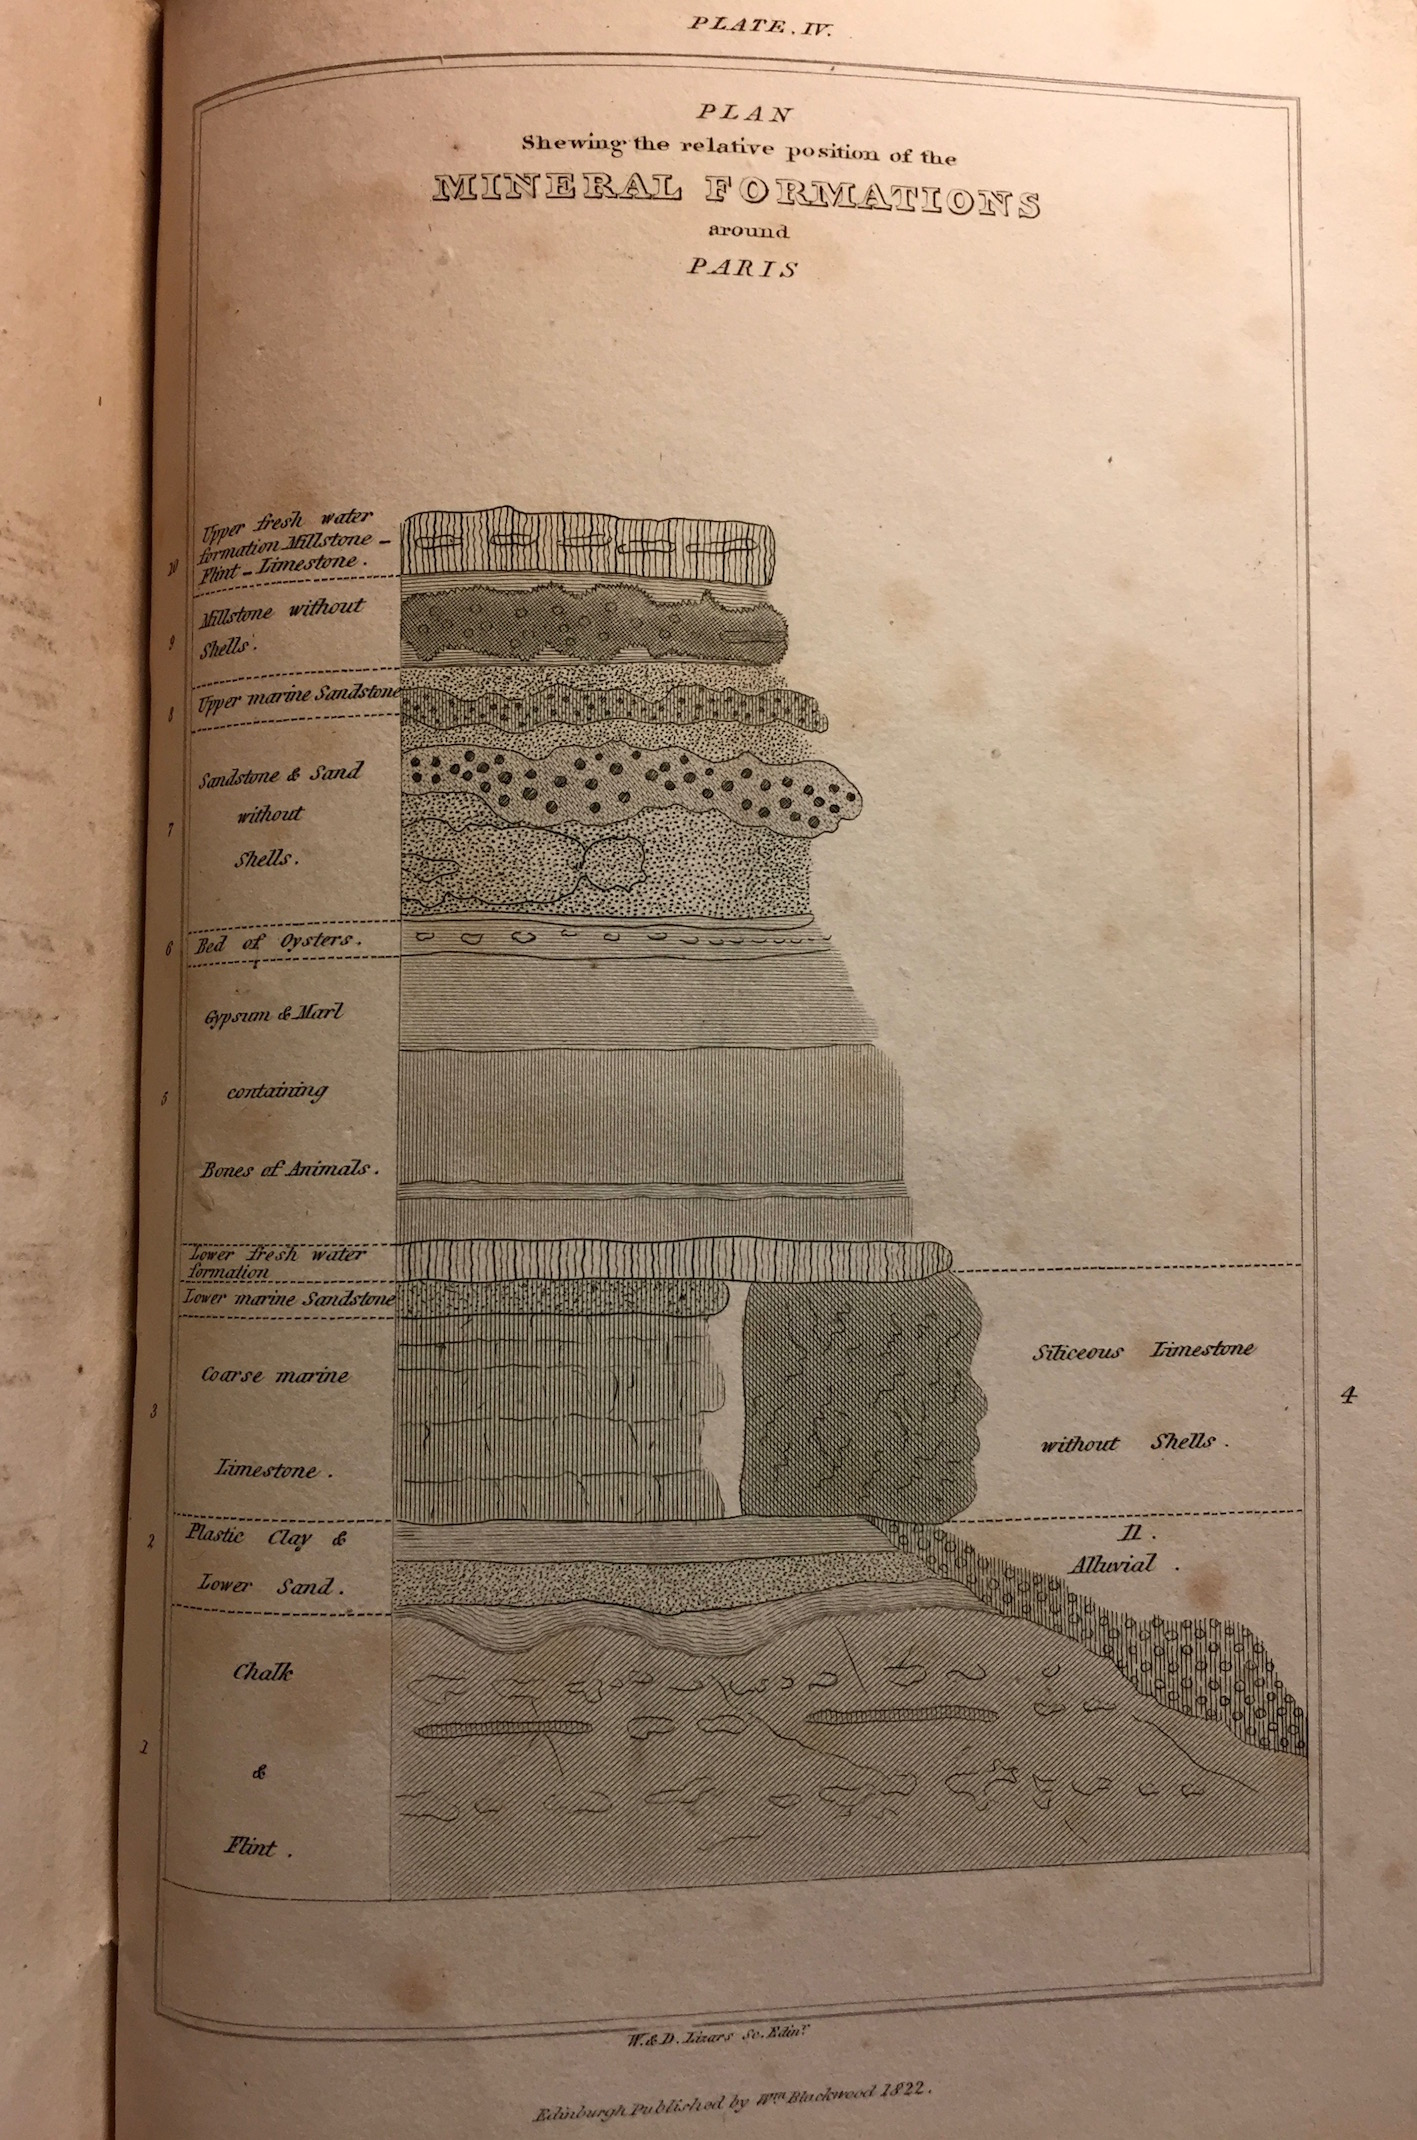 """Plate IV: Plan of the relative position of the mineral formations around Paris."""